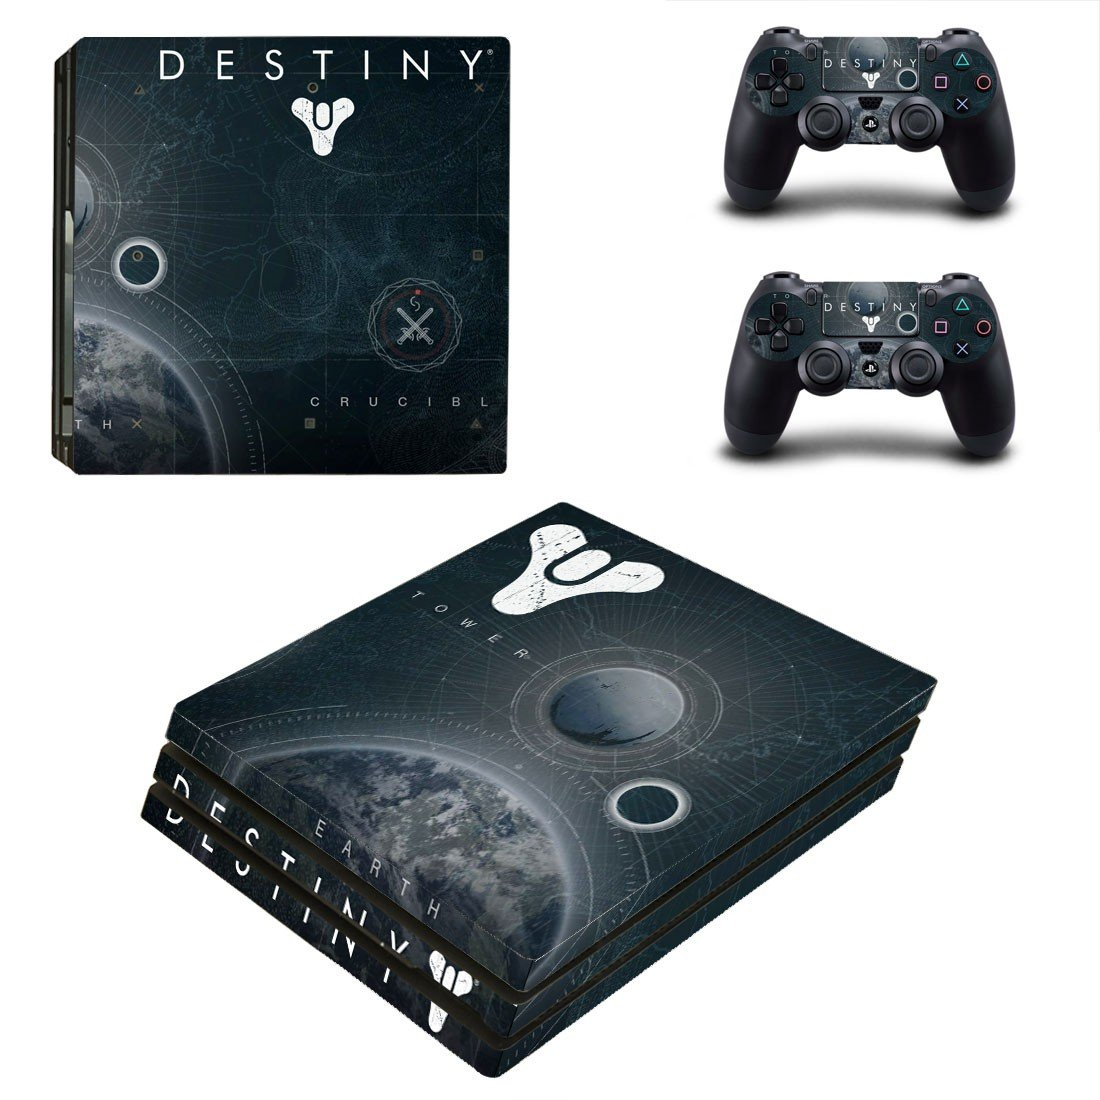 Destiny decal skin sticker for PS4 Pro console and controllers